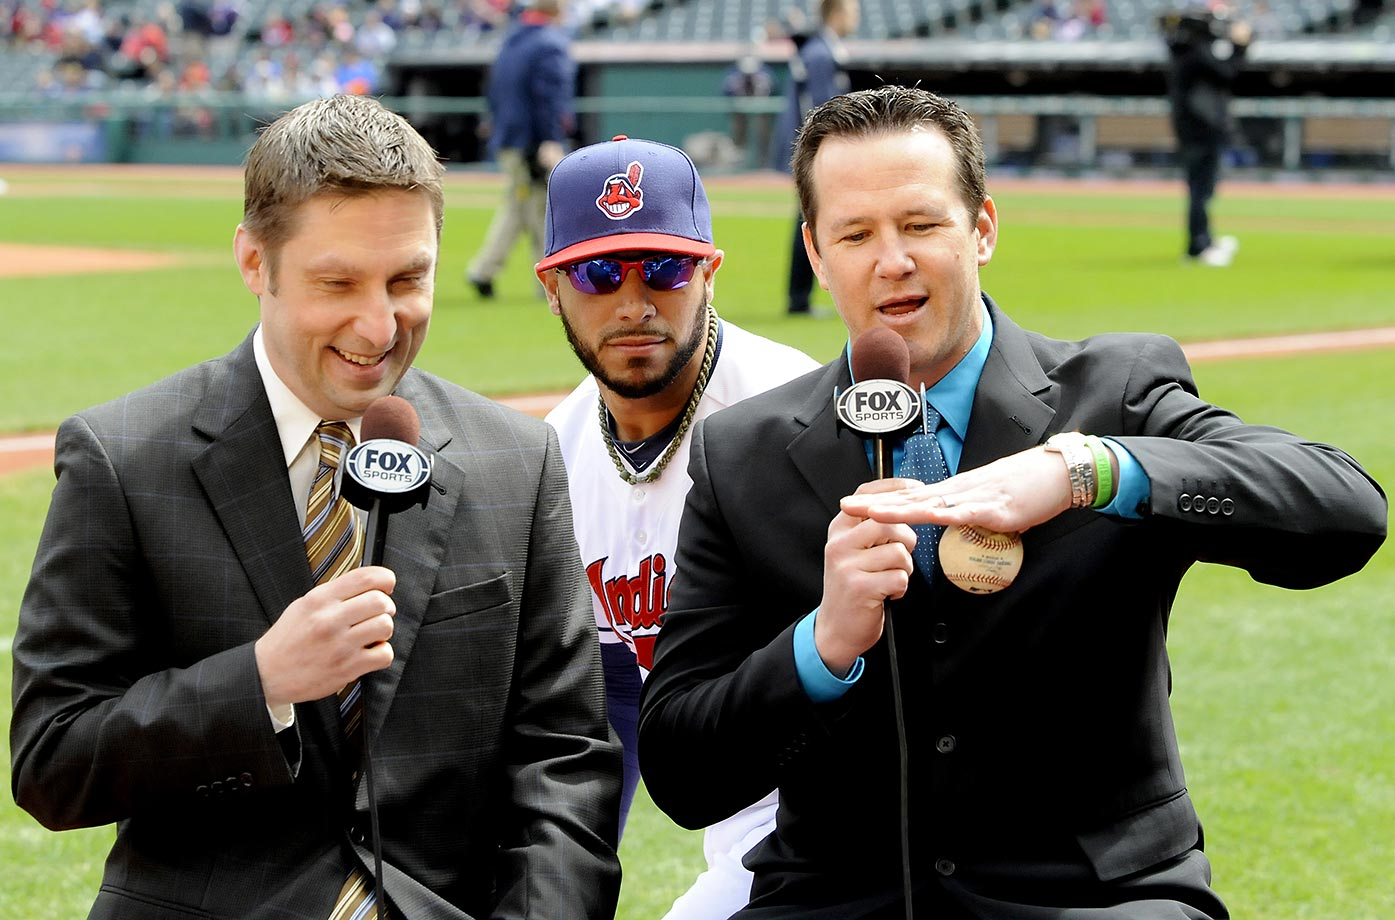 Mike Aviles of the Cleveland Indians sneaks up behind pregame hosts Al Pawlowski and Jason Stanford.